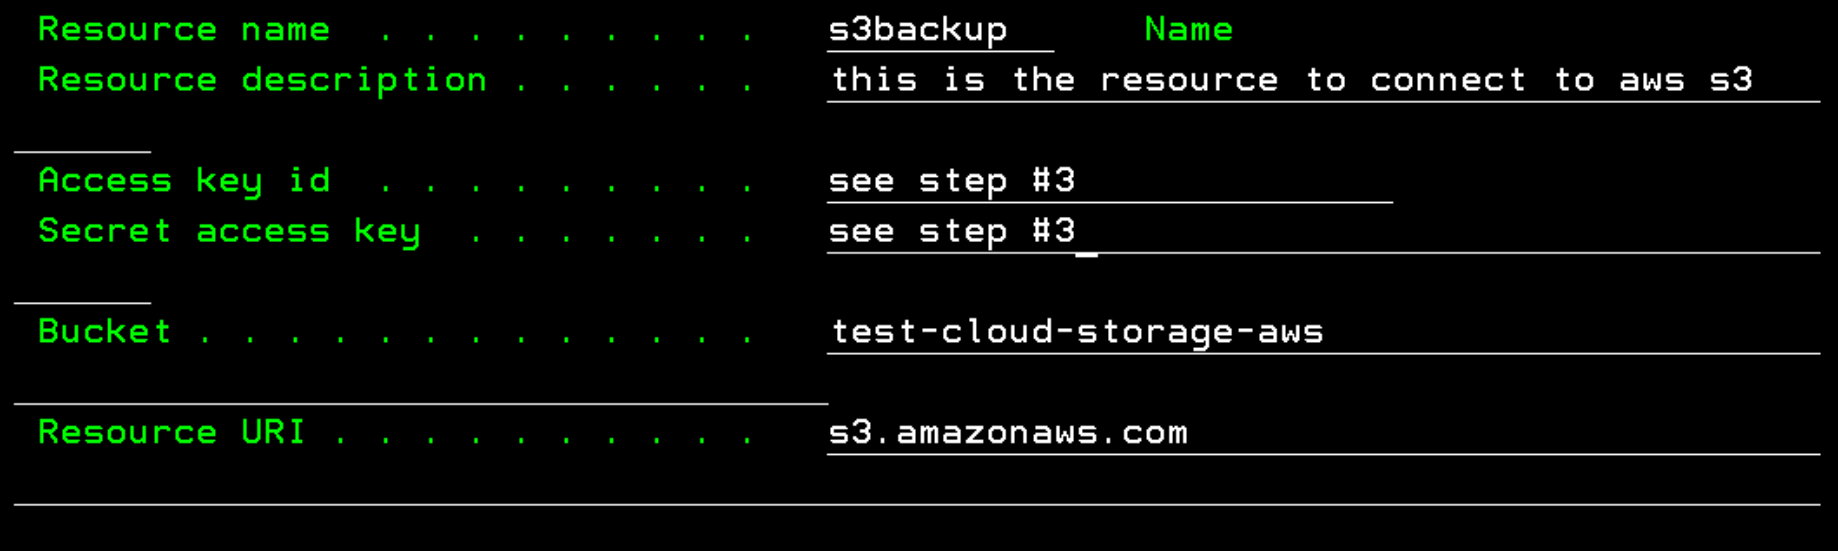 Integrating IBM Cloud Storage Solutions for i with AWS S3